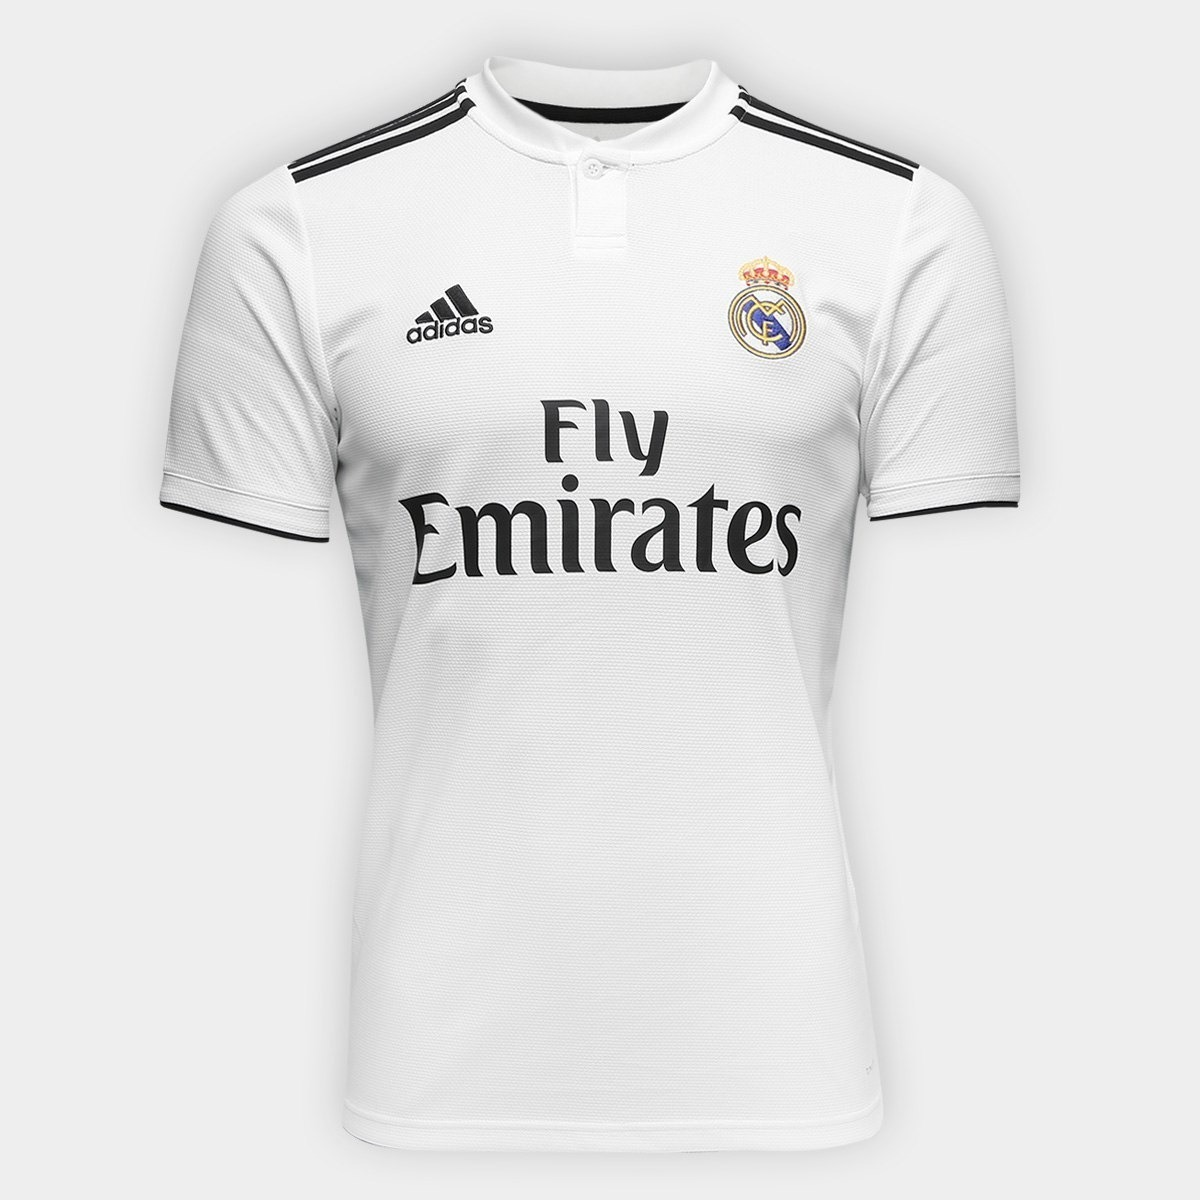 011eb812a1328 camiseta local real madrid 2019 adidas personalizado gratis. Cargando zoom.